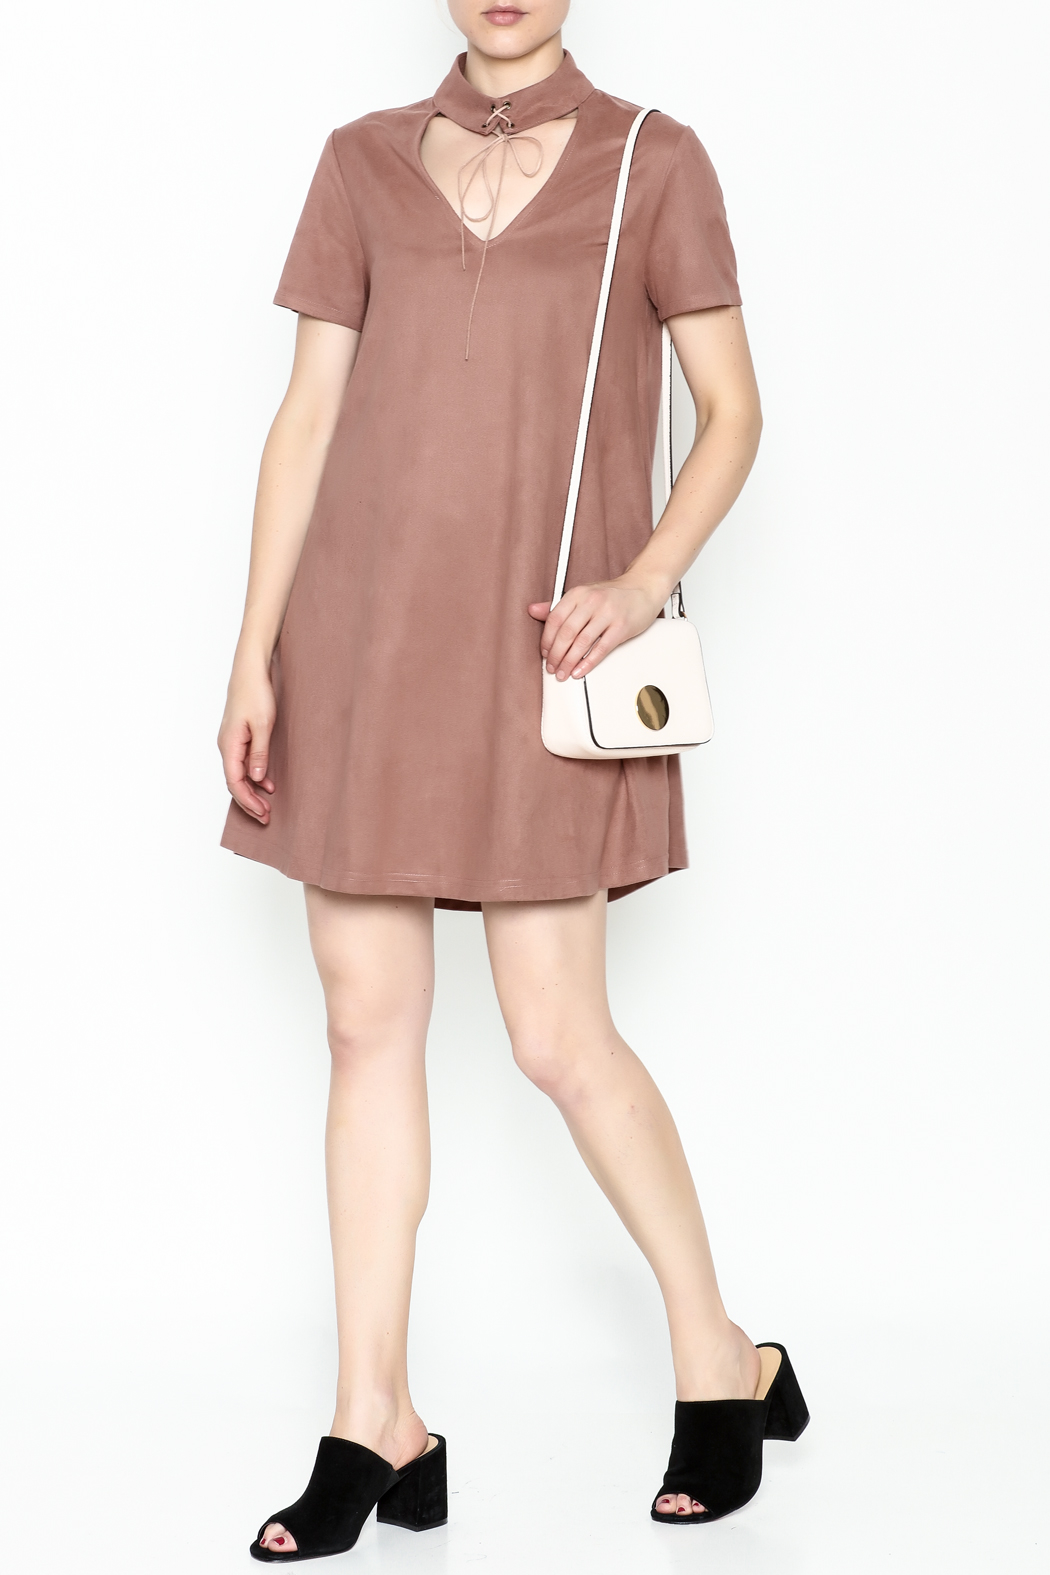 LoveRiche Suede Choker Dress - Side Cropped Image